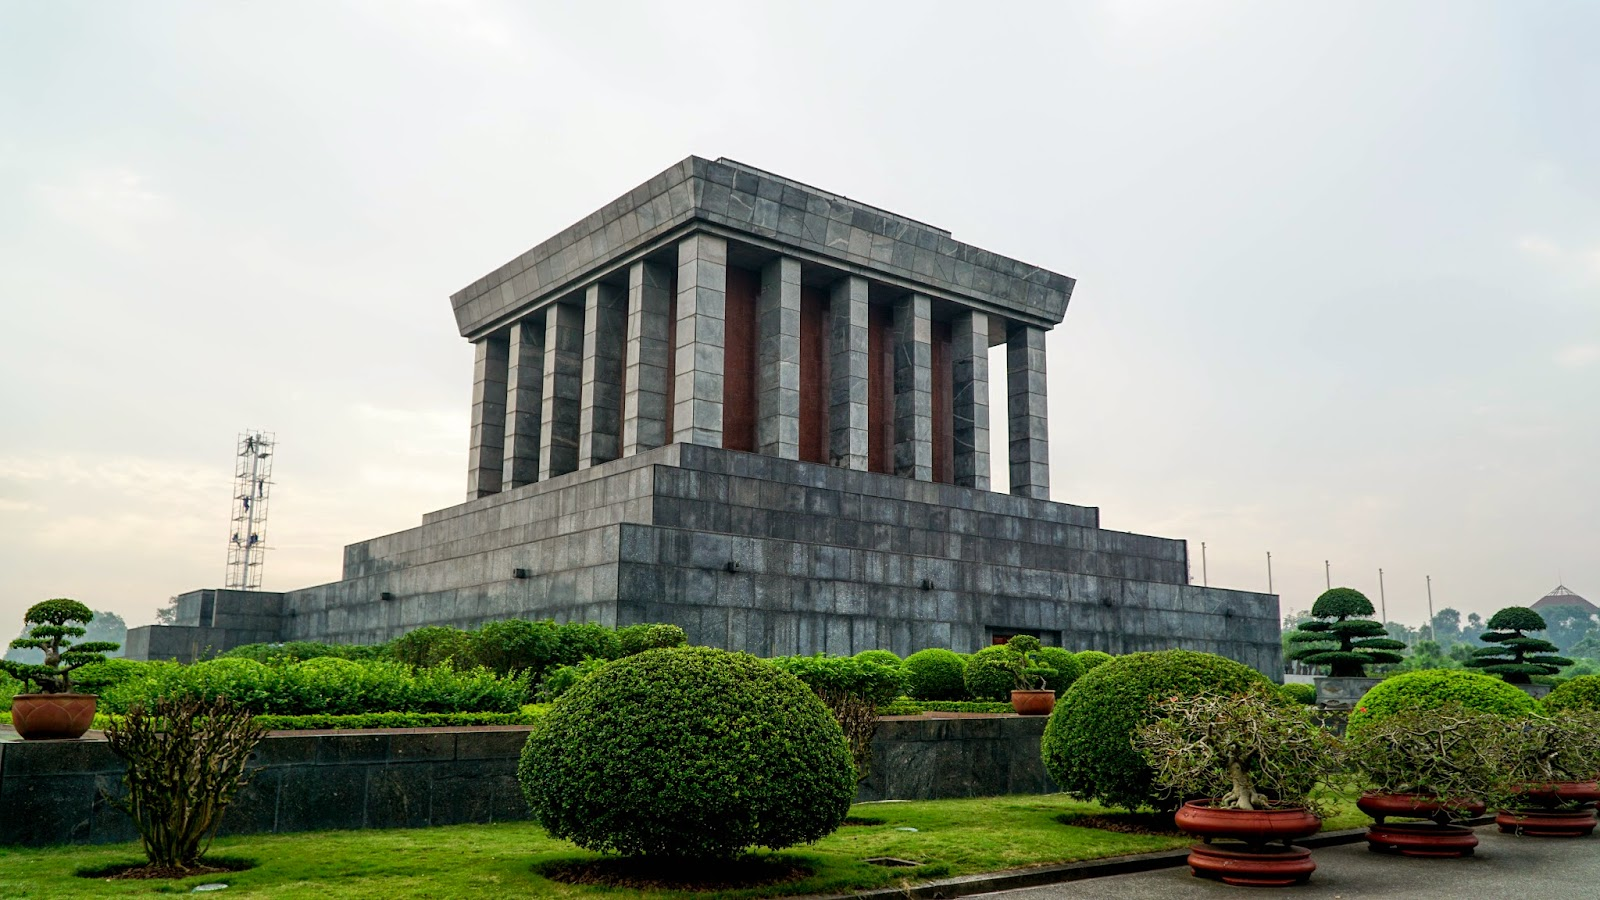 Ho Chi Minh mausoleum, the last resting place of one of Vietnam's most prominent figures